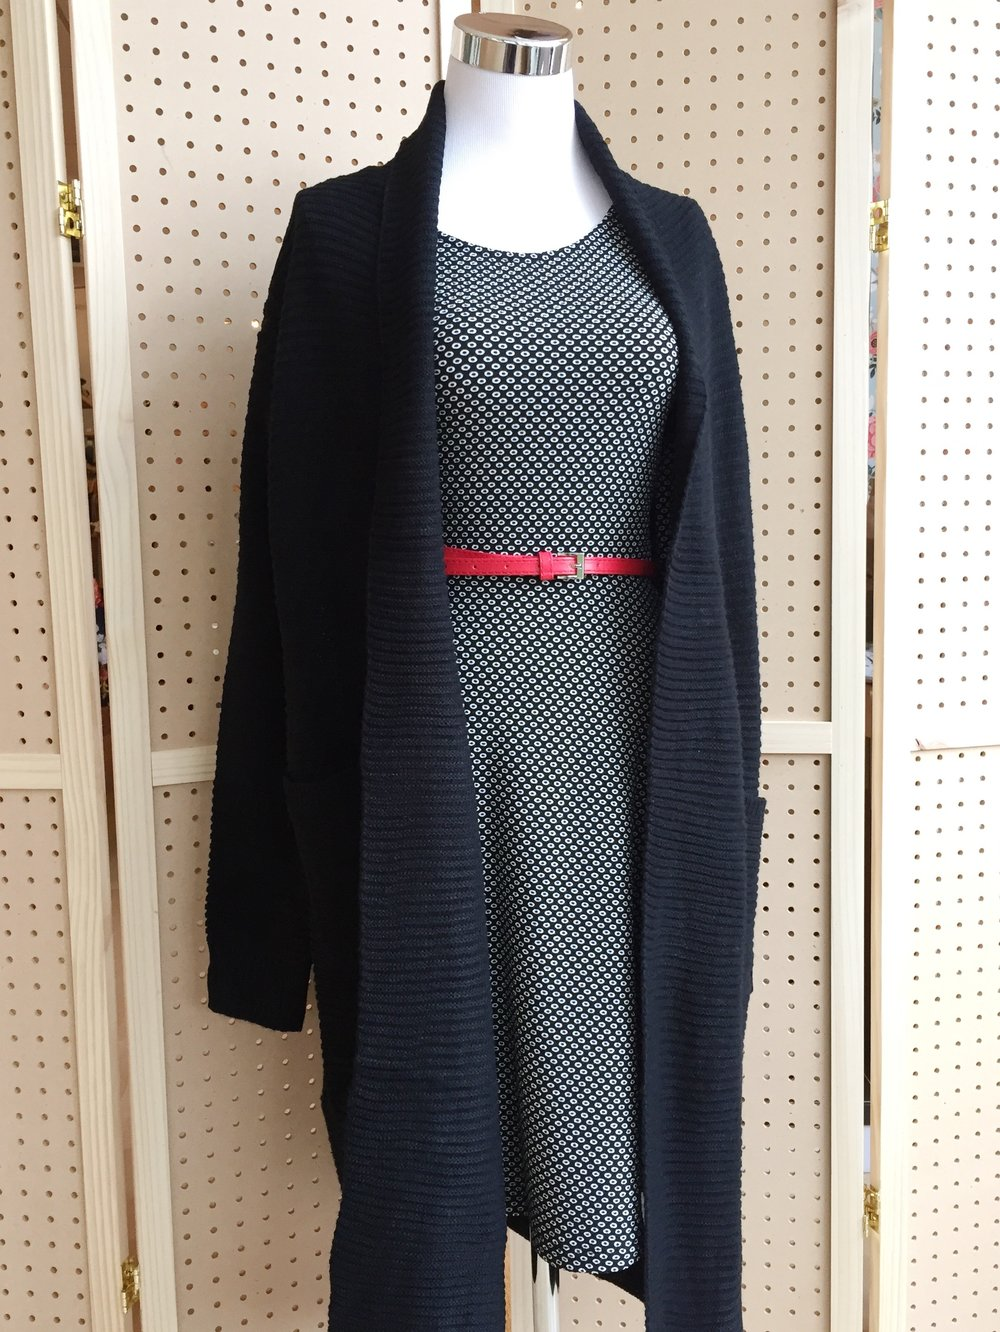 Gilli Belted Dress ($45) paired with Hailey & Co Chunky Cardi ($54)